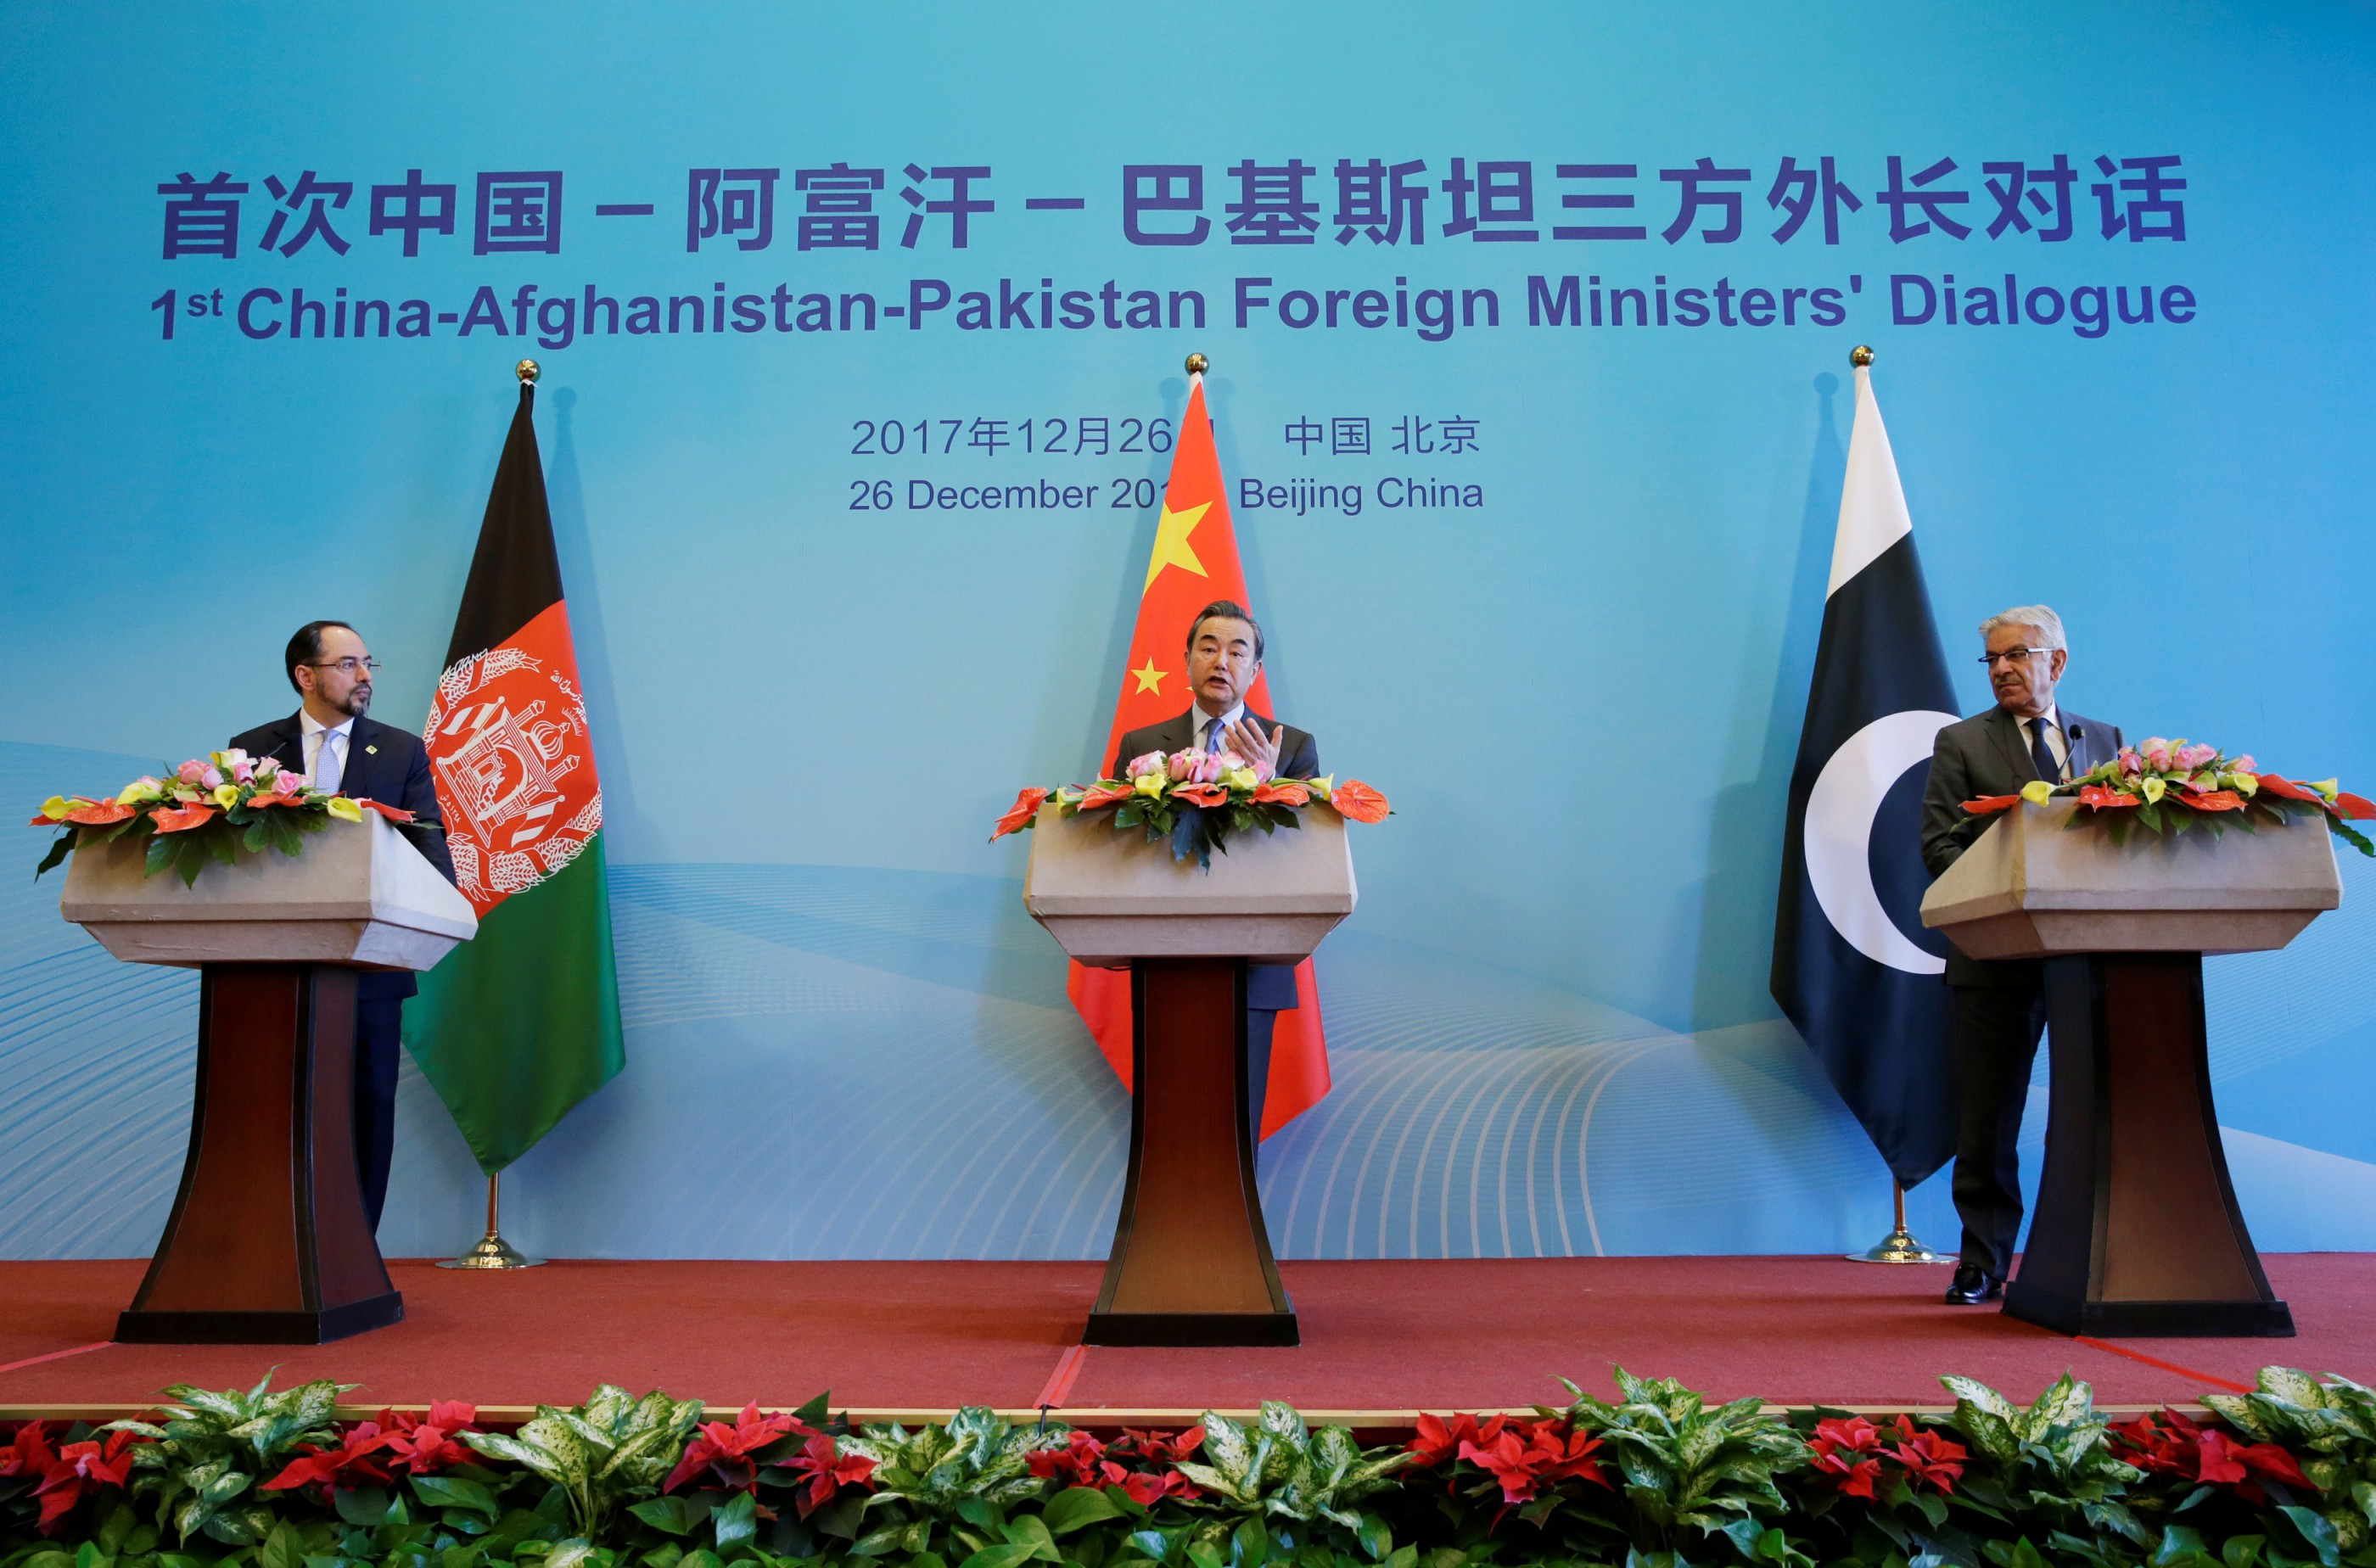 (L to R) Afghan Foreign Minister Salahuddin Rabbani, Chinese Foreign Minister Wang Yi and Pakistani Foreign Minister Khawaja Asif attend a joint news conference after the 1st China-Afghanistan-Pakistan Foreign Ministers' Dialogue in Beijing, China, December 26, 2017. Credit: Reuters /Jason Lee